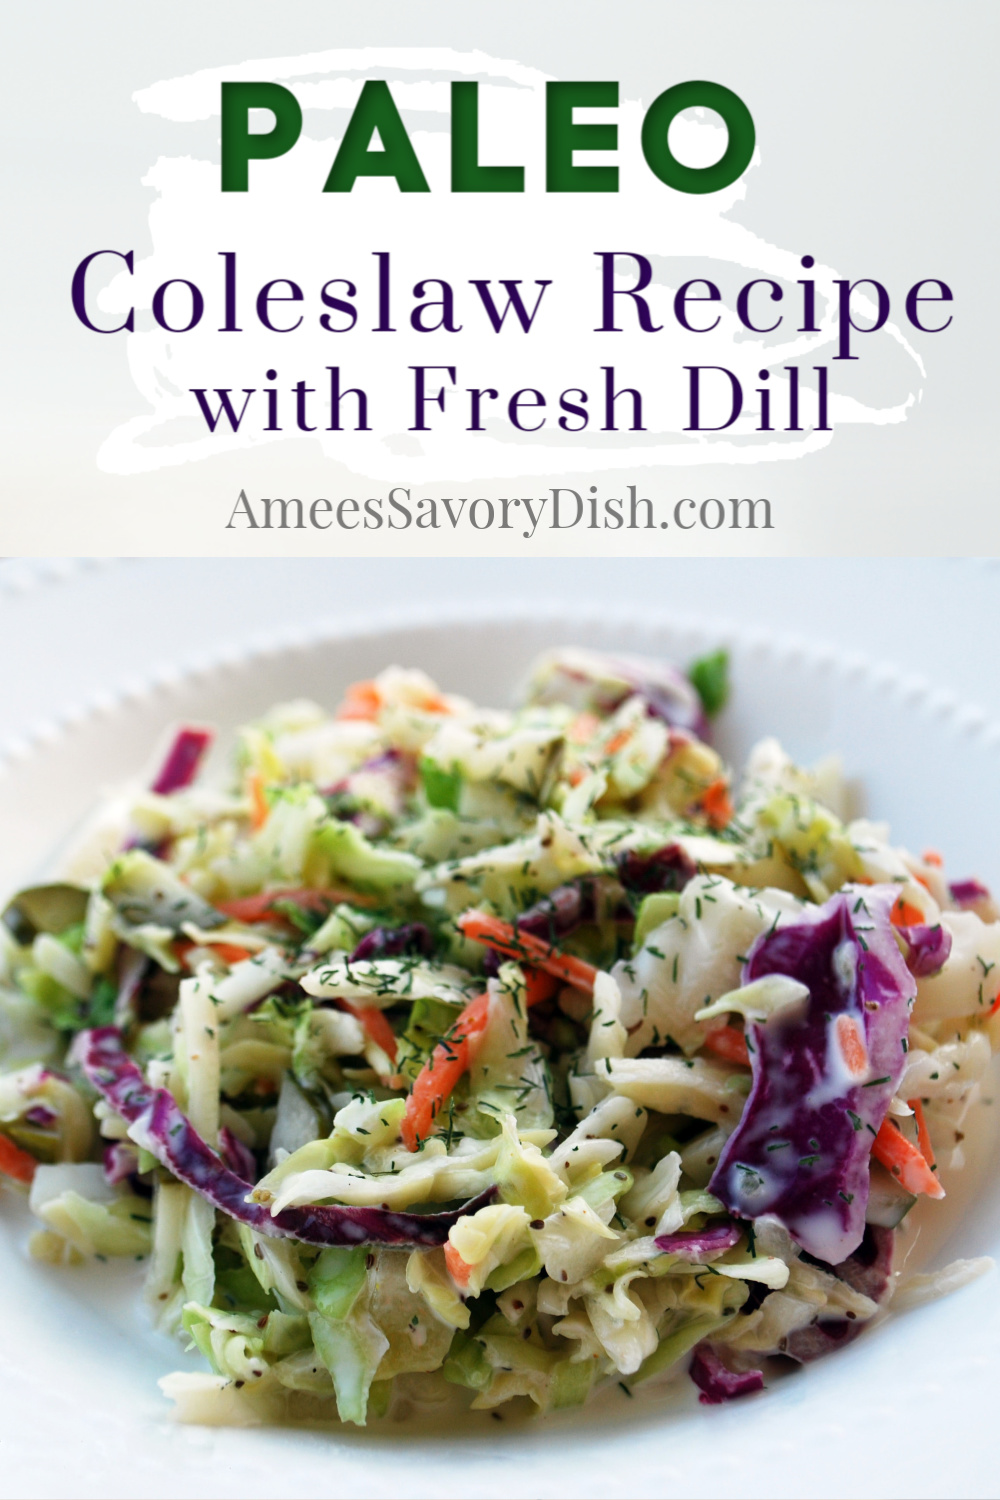 A Paleo-friendly recipe for coleslaw that's loaded with flavor made with olive oil mayonnaise, vinegar, celery, herbs, and spices. #coleslaw #paleocoleslaw #paleosidedish via @Ameessavorydish